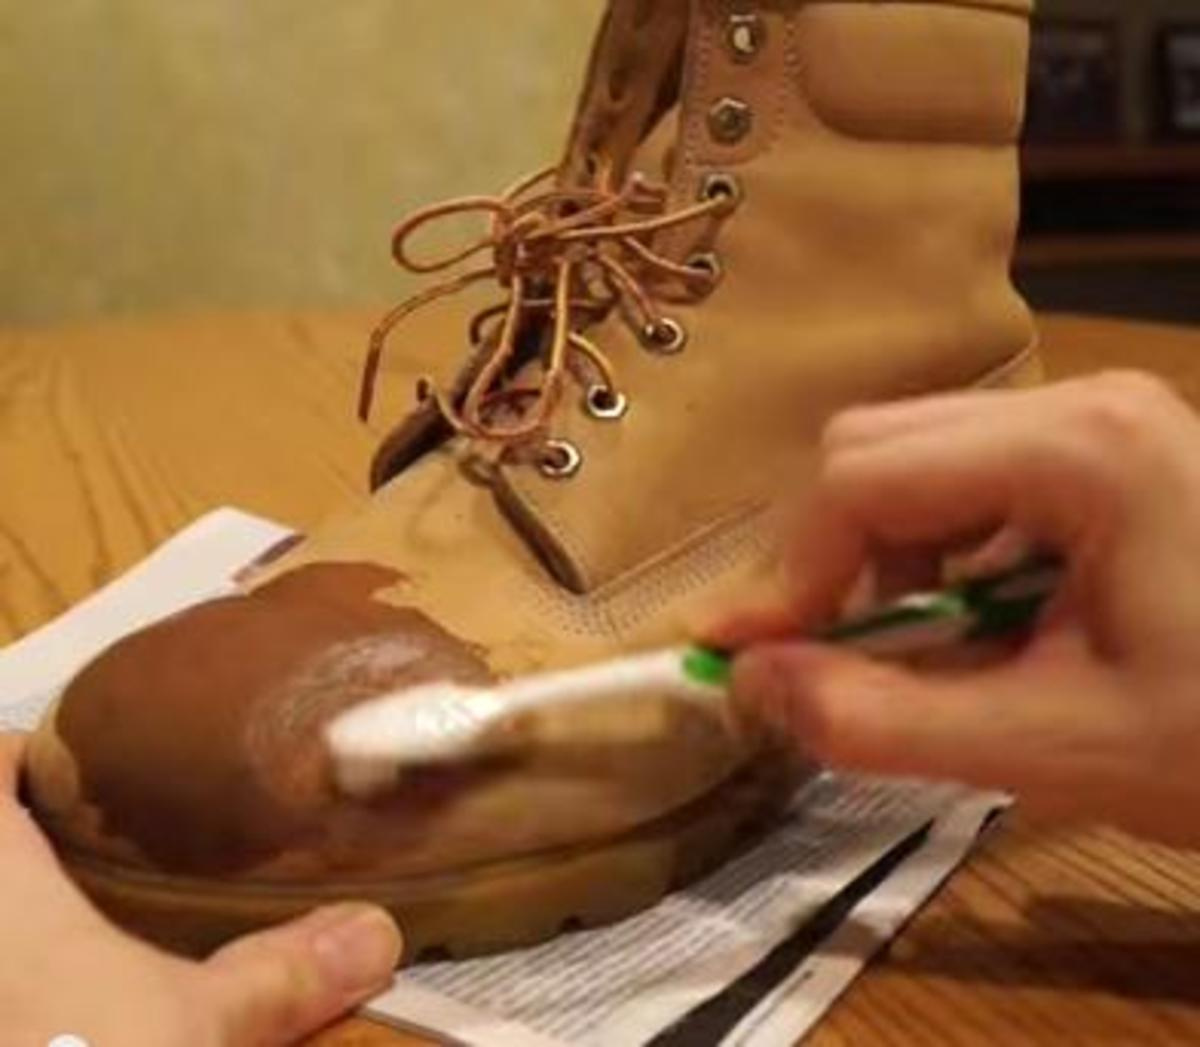 Scrub boot (make bubbles) with suede cleaner.